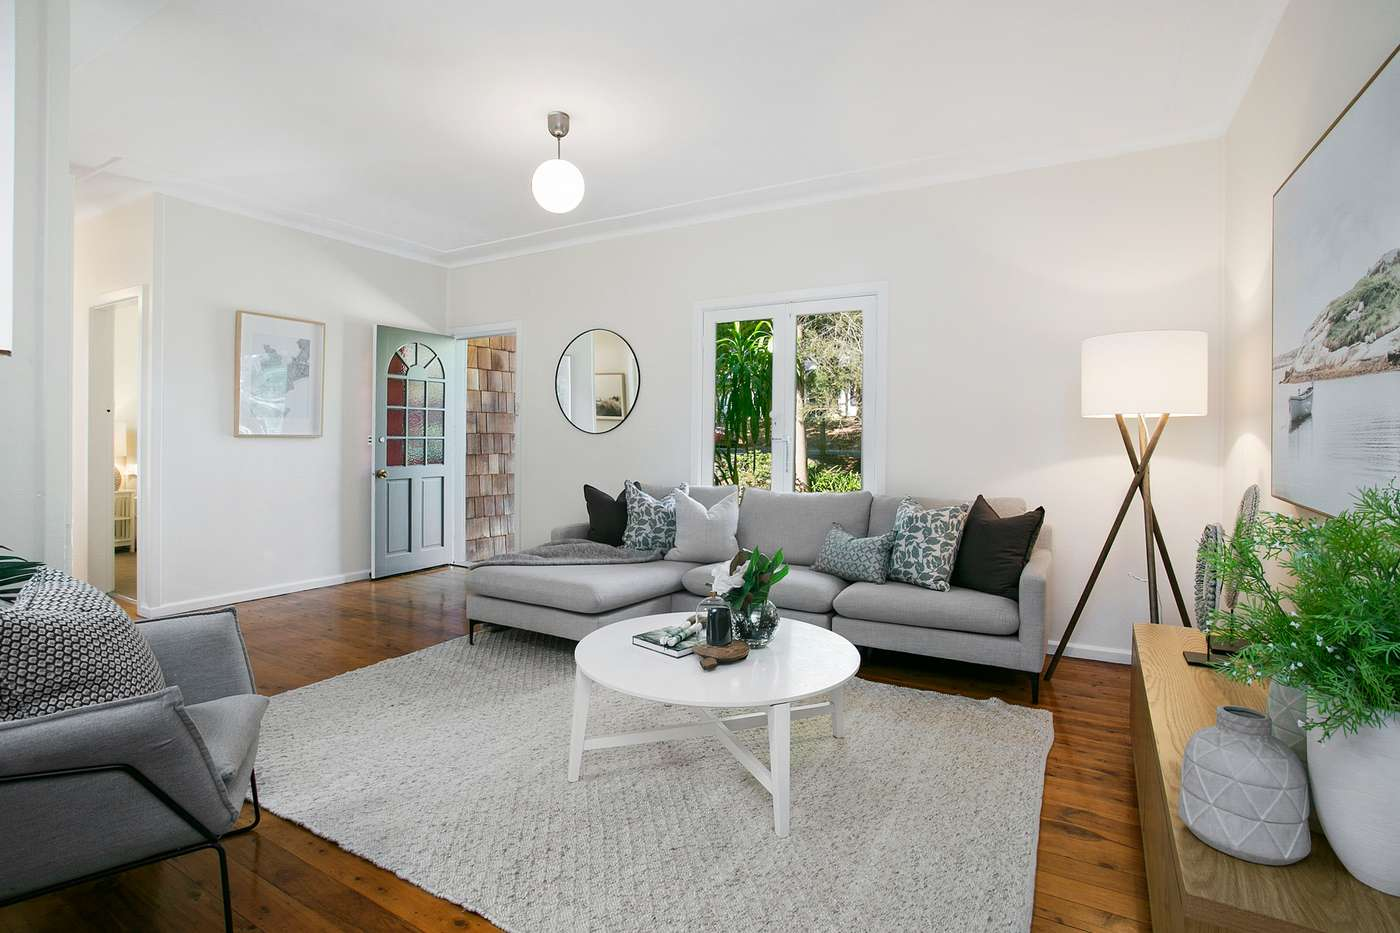 Main view of Homely house listing, 2 Malinya Road, Allambie Heights, NSW 2100